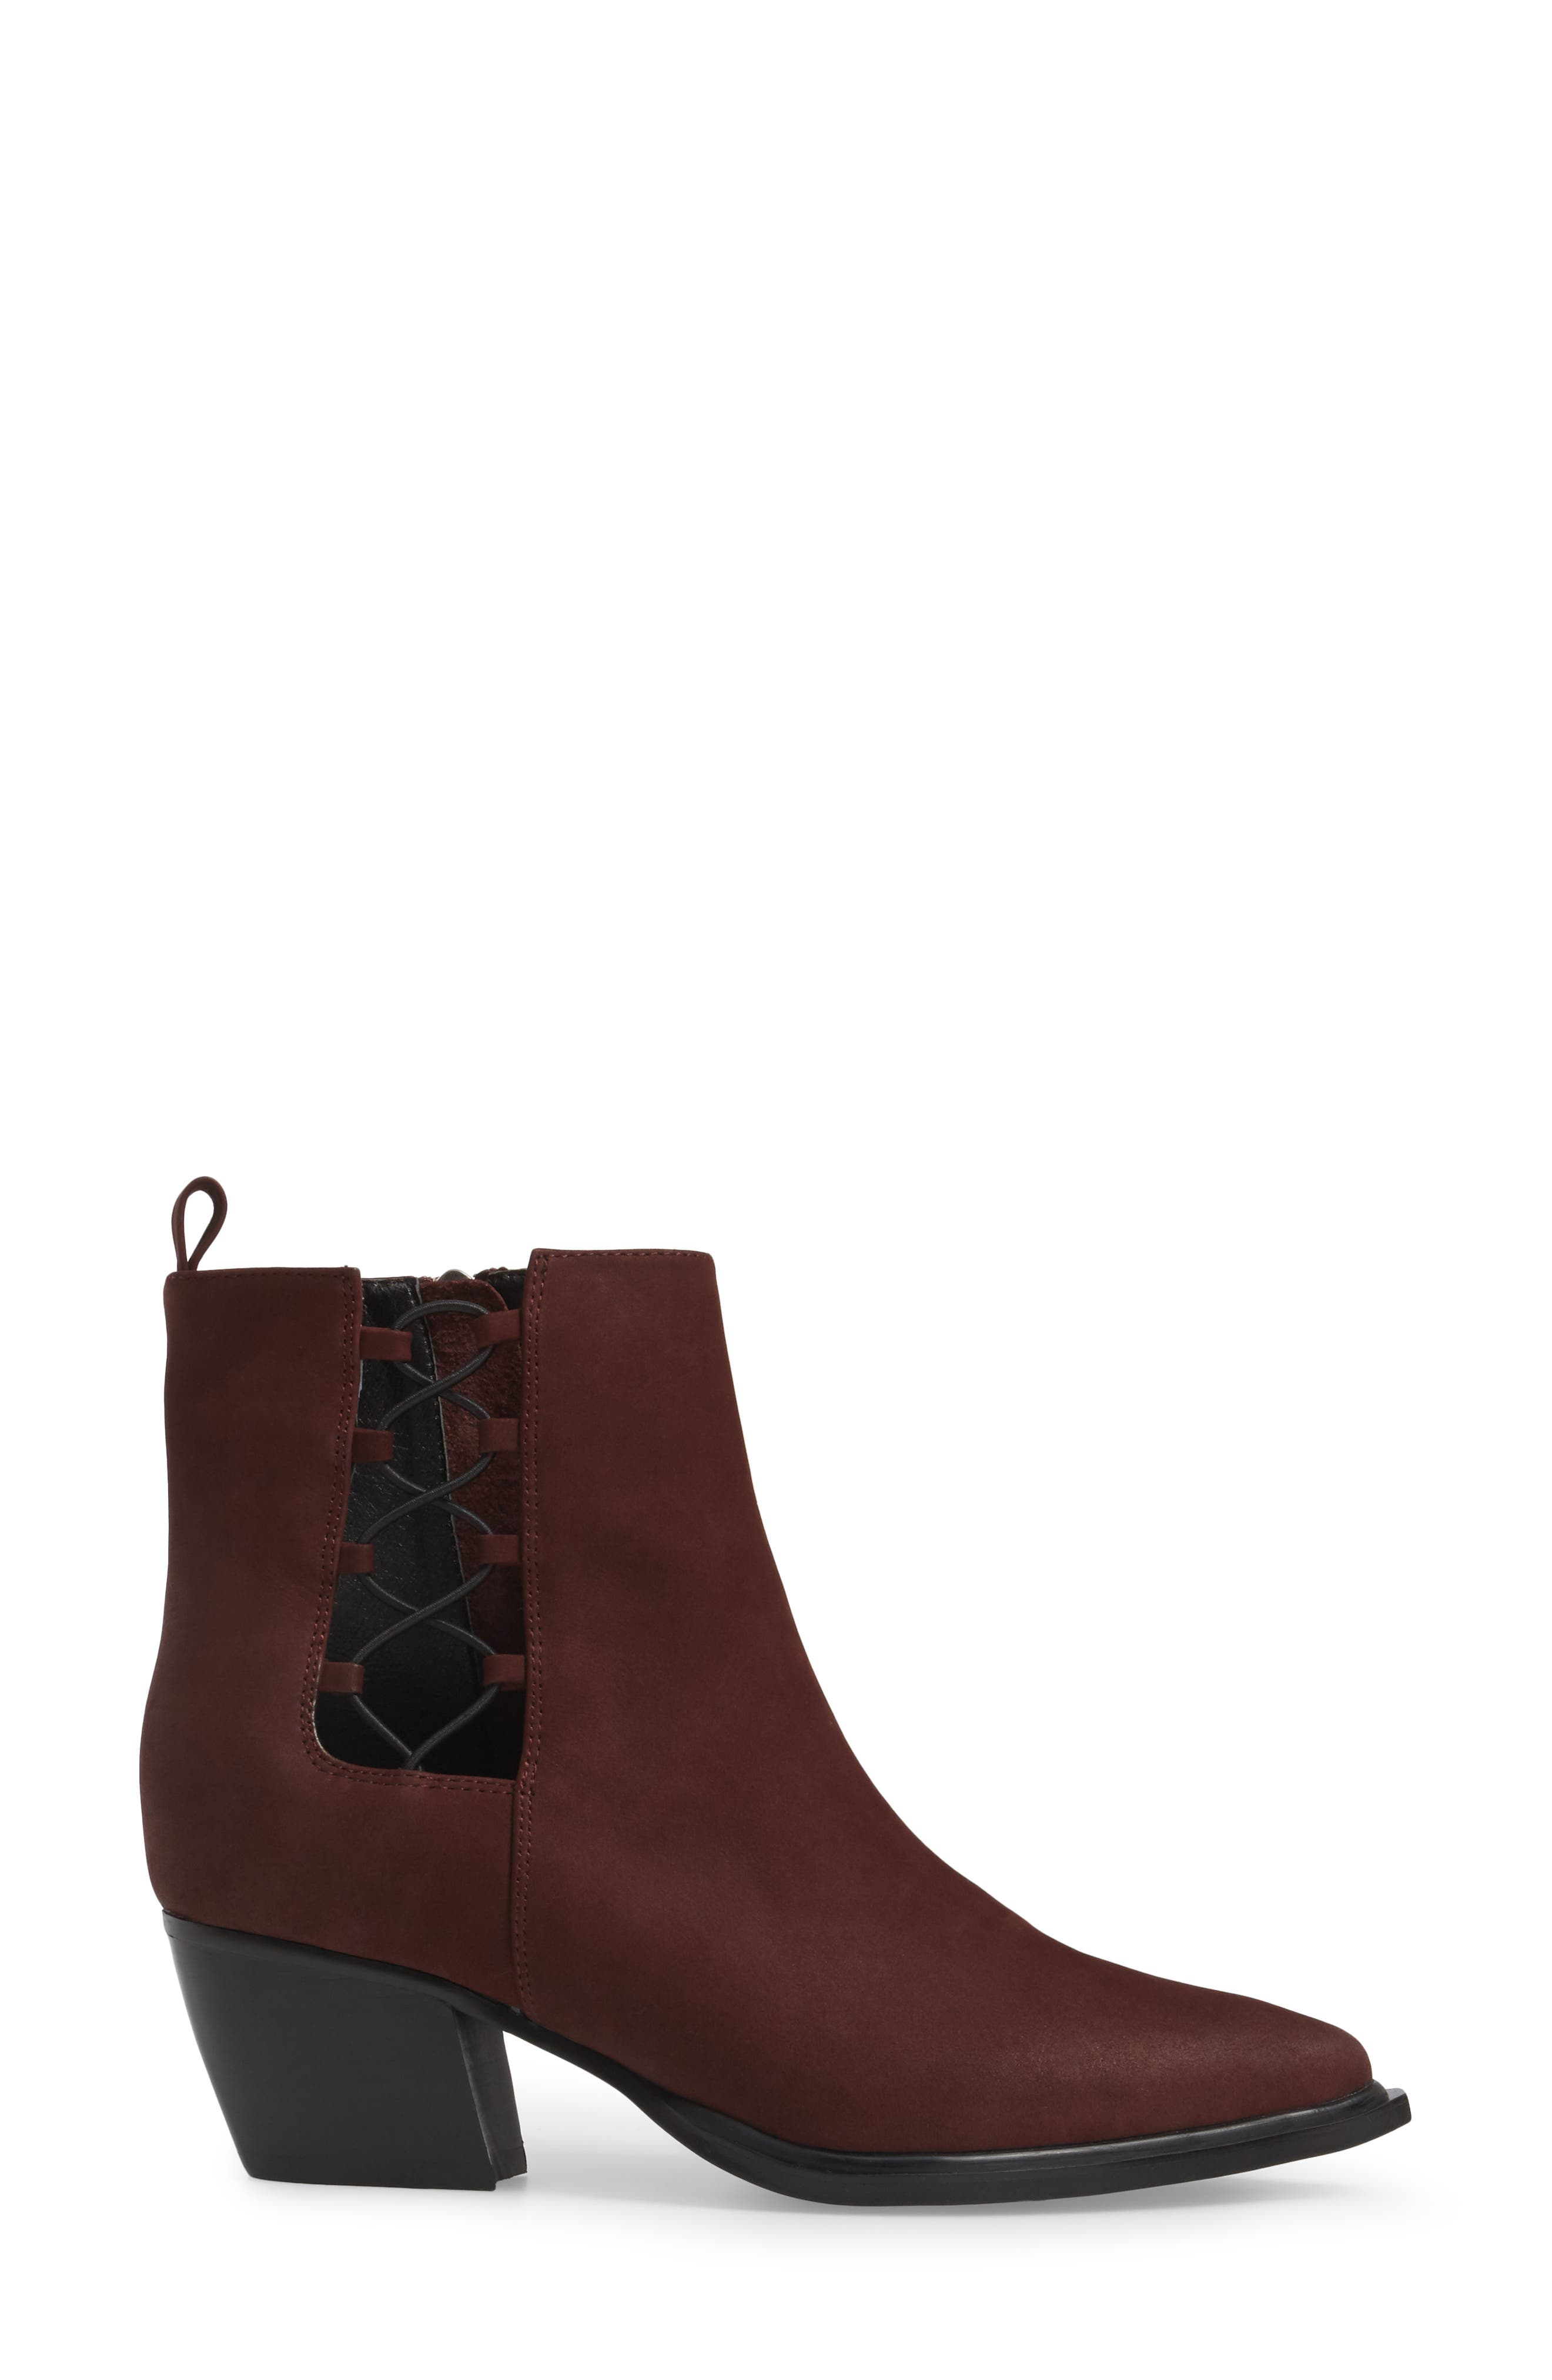 Hackney Corset Bootie,                             Alternate thumbnail 3, color,                             WINE LEATHER